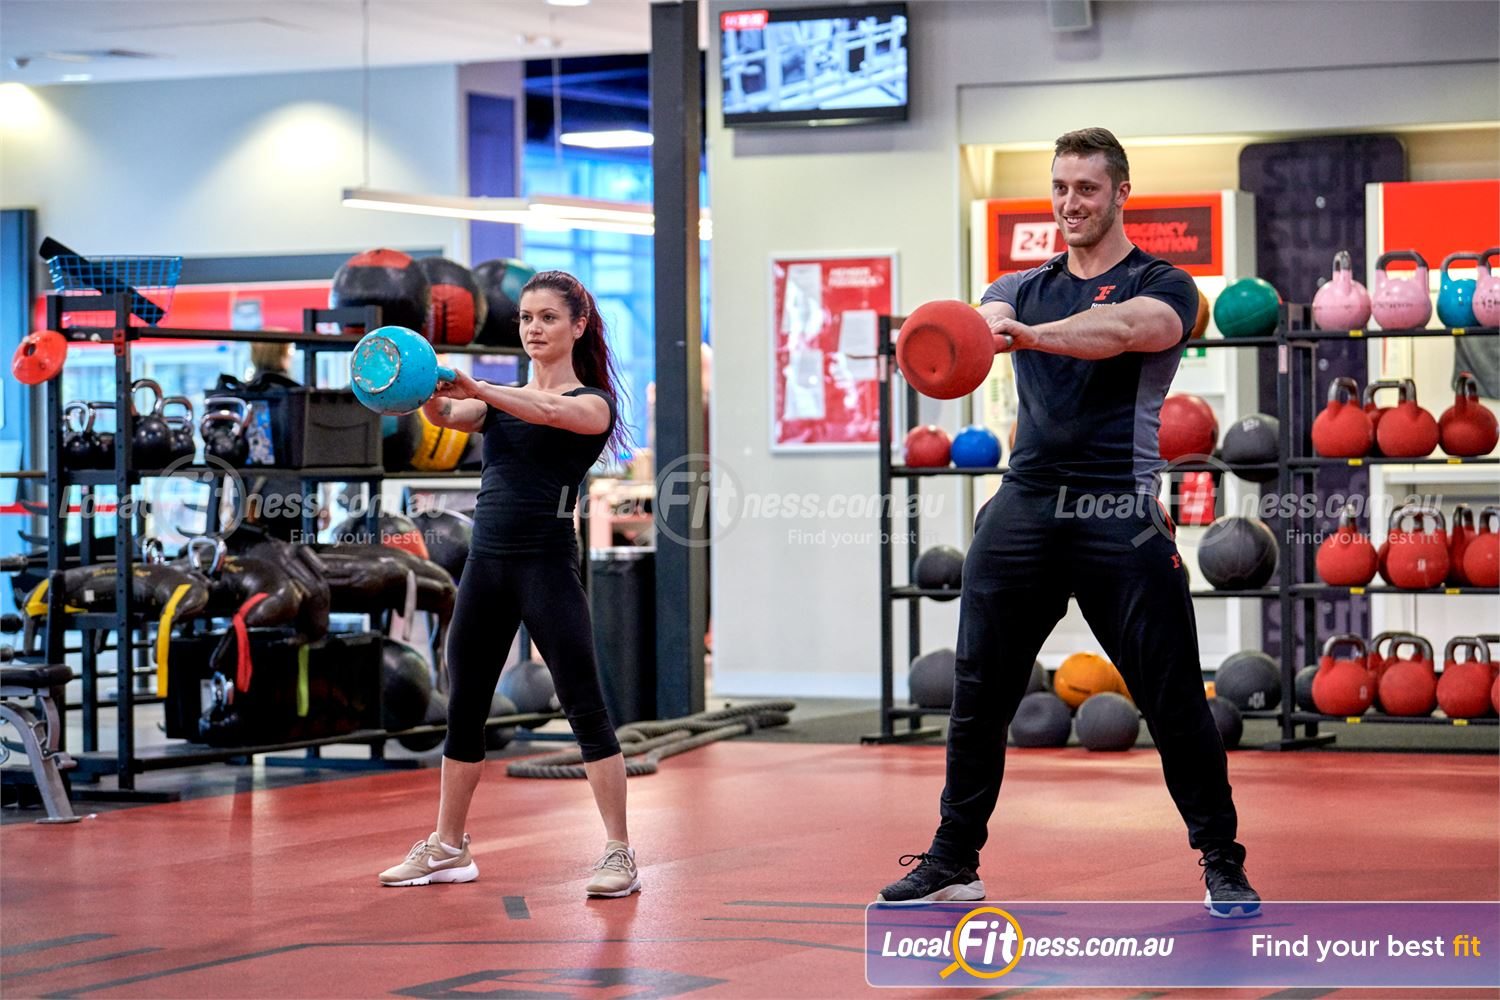 Fitness First Canberra City Canberra Improve your stability and strength with kettlebell swings.